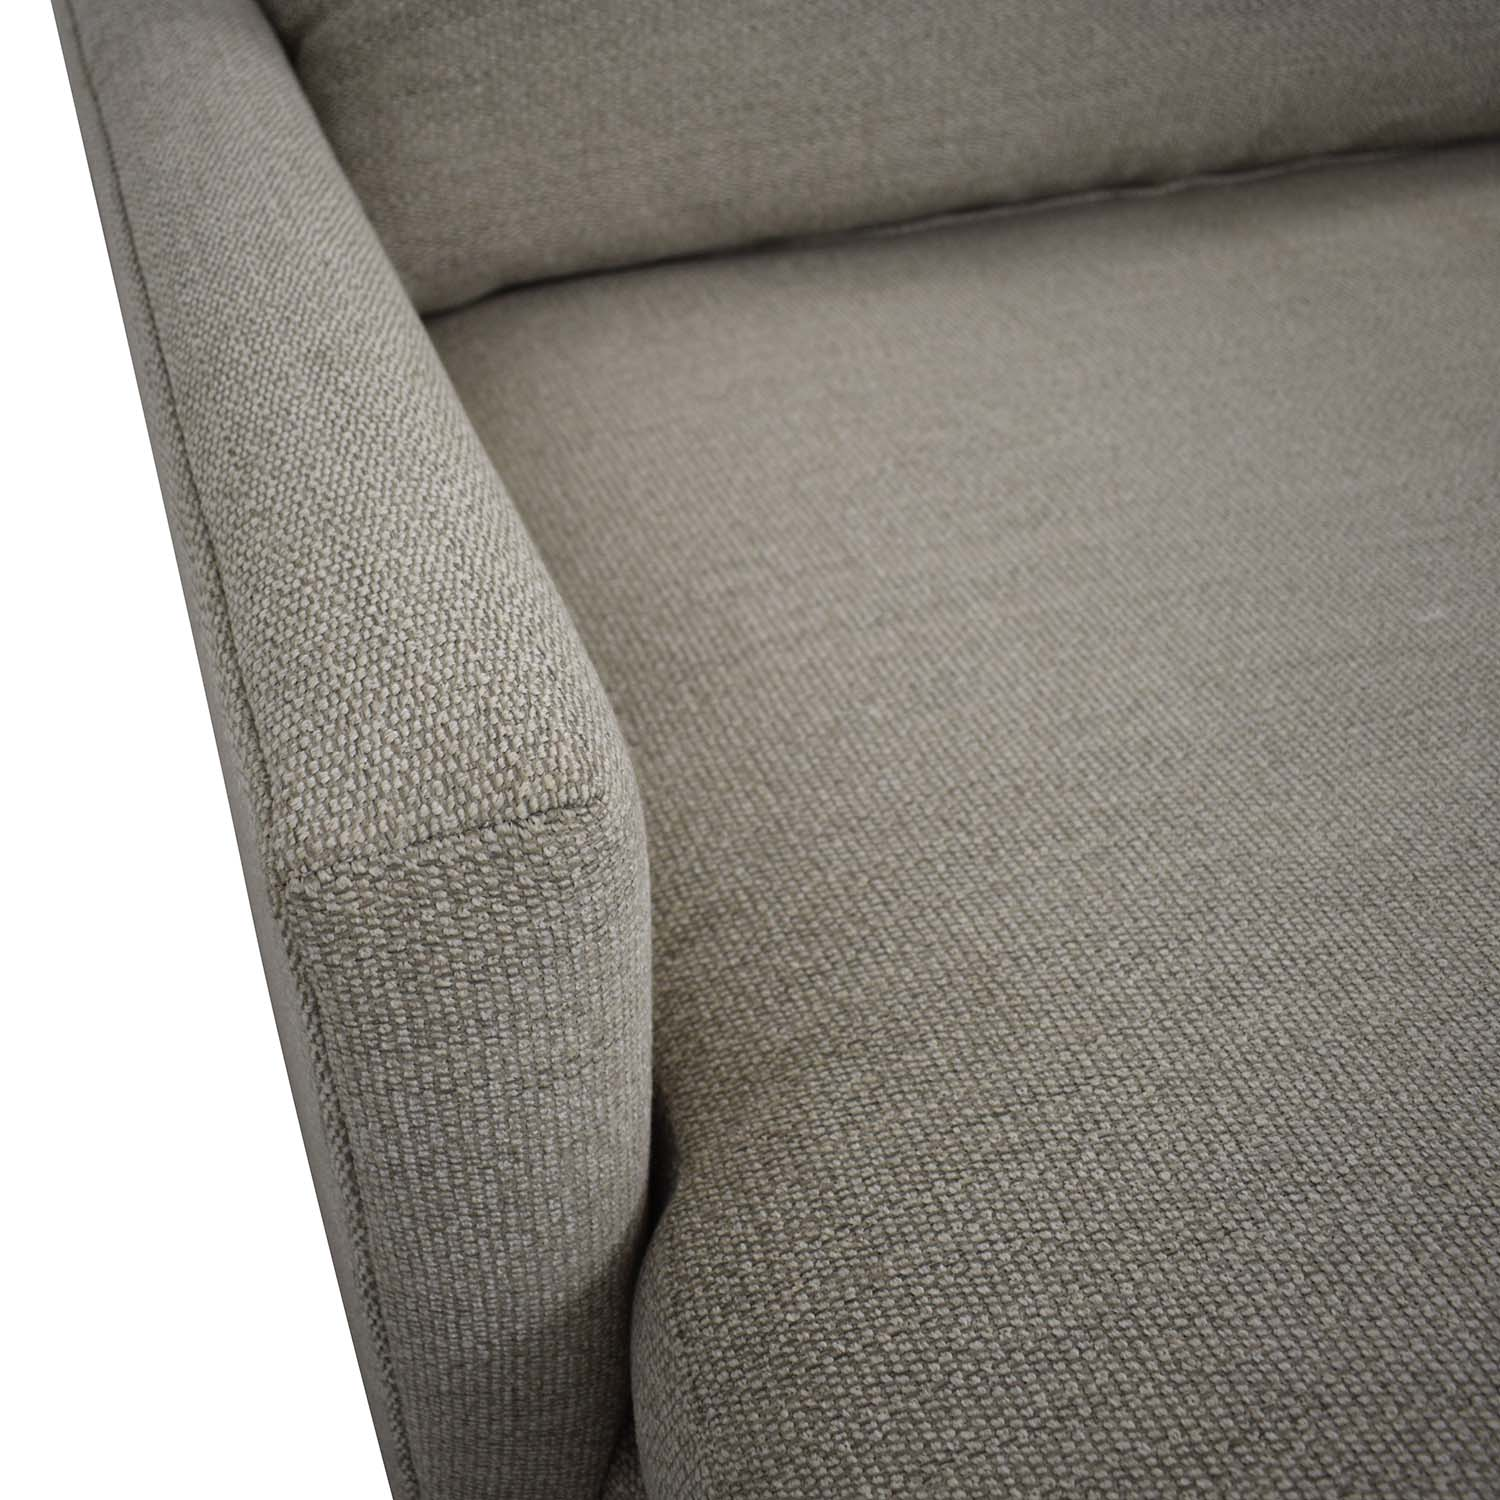 Crate & Barrel Crate & Barrel Lounge II Left Arm Chaise for sale